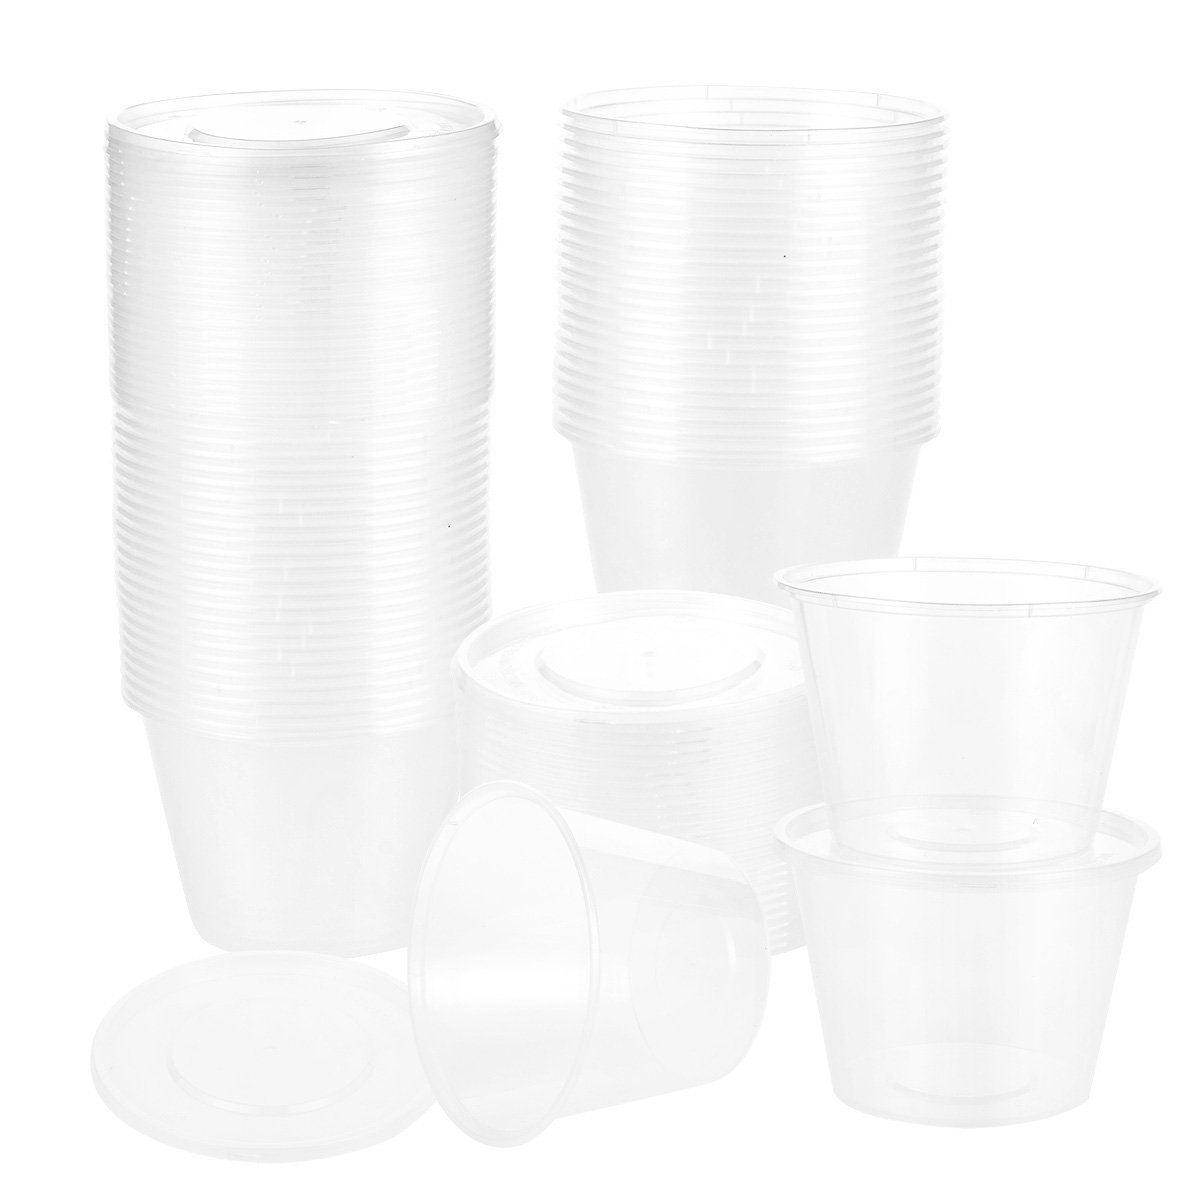 Juvale 50-Pack Plastic Food Containers Lids - Round Food Storage Containers, Deli Take Out Restaurant Containers, Microwave, Freezer, Dishwasher Safe, 17 Ounce